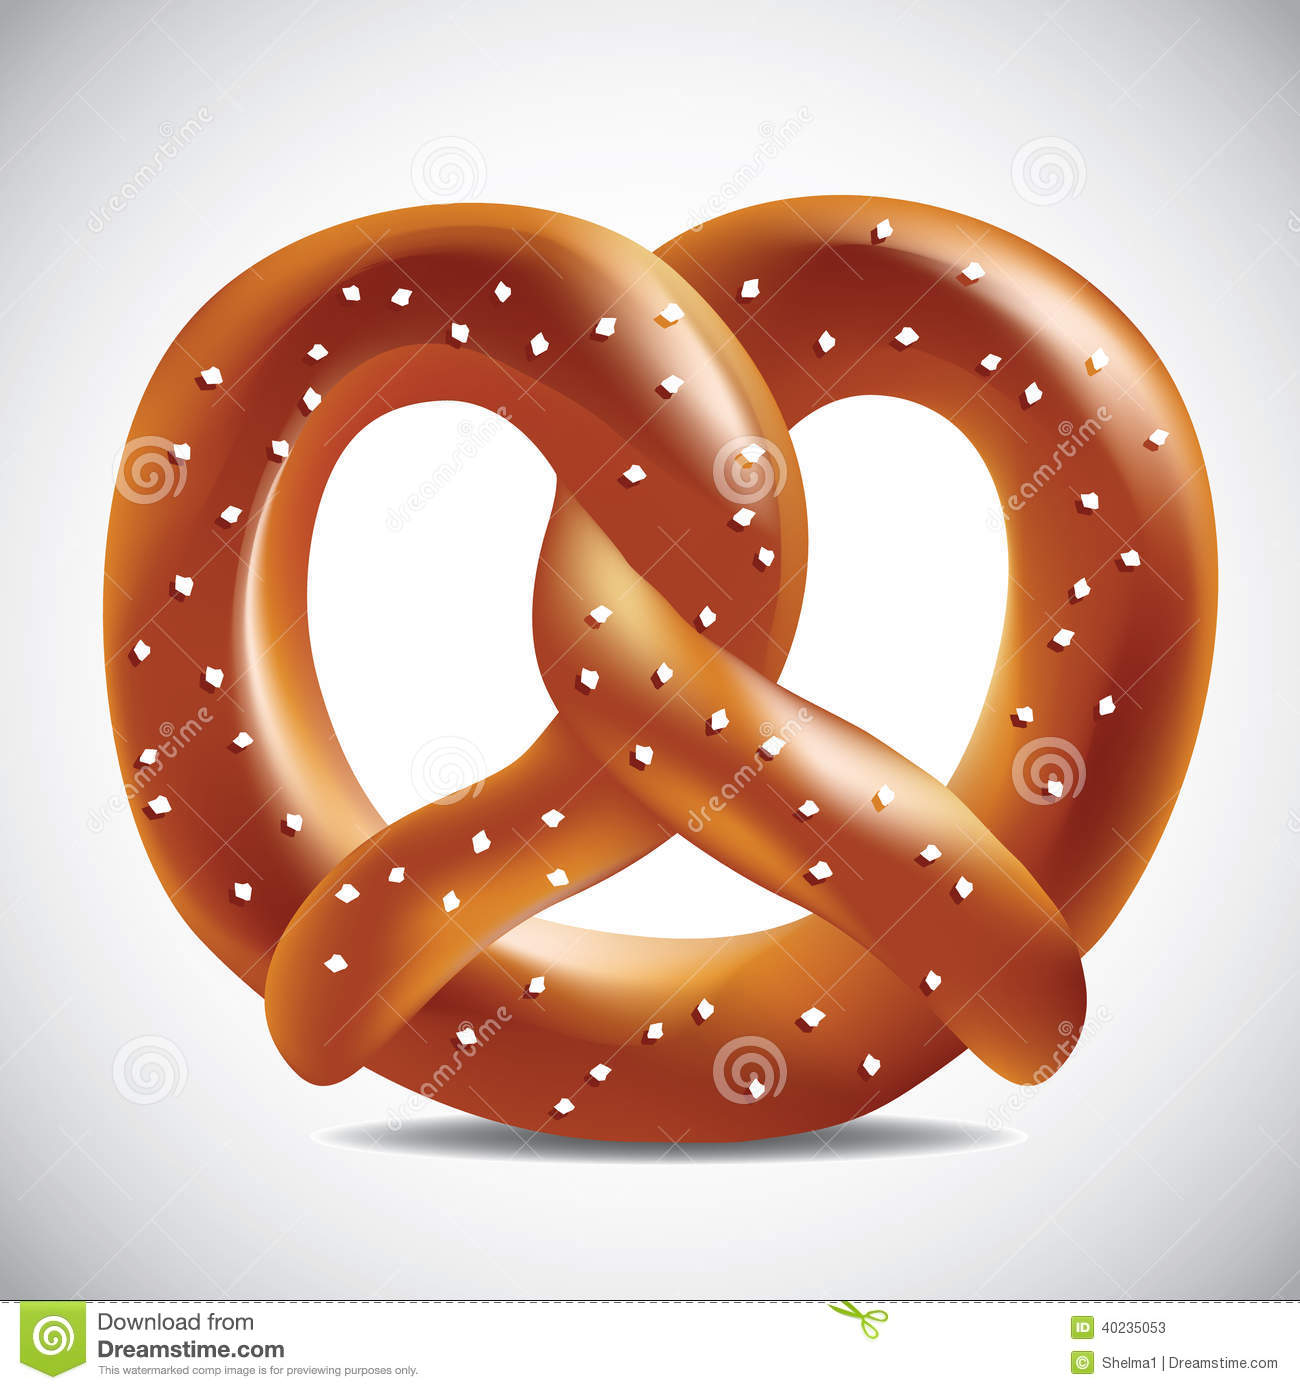 Clip Art Pretzel Clip Art pretzel stock illustrations 3600 oktoberfest party clipart elements soft on a white background photos